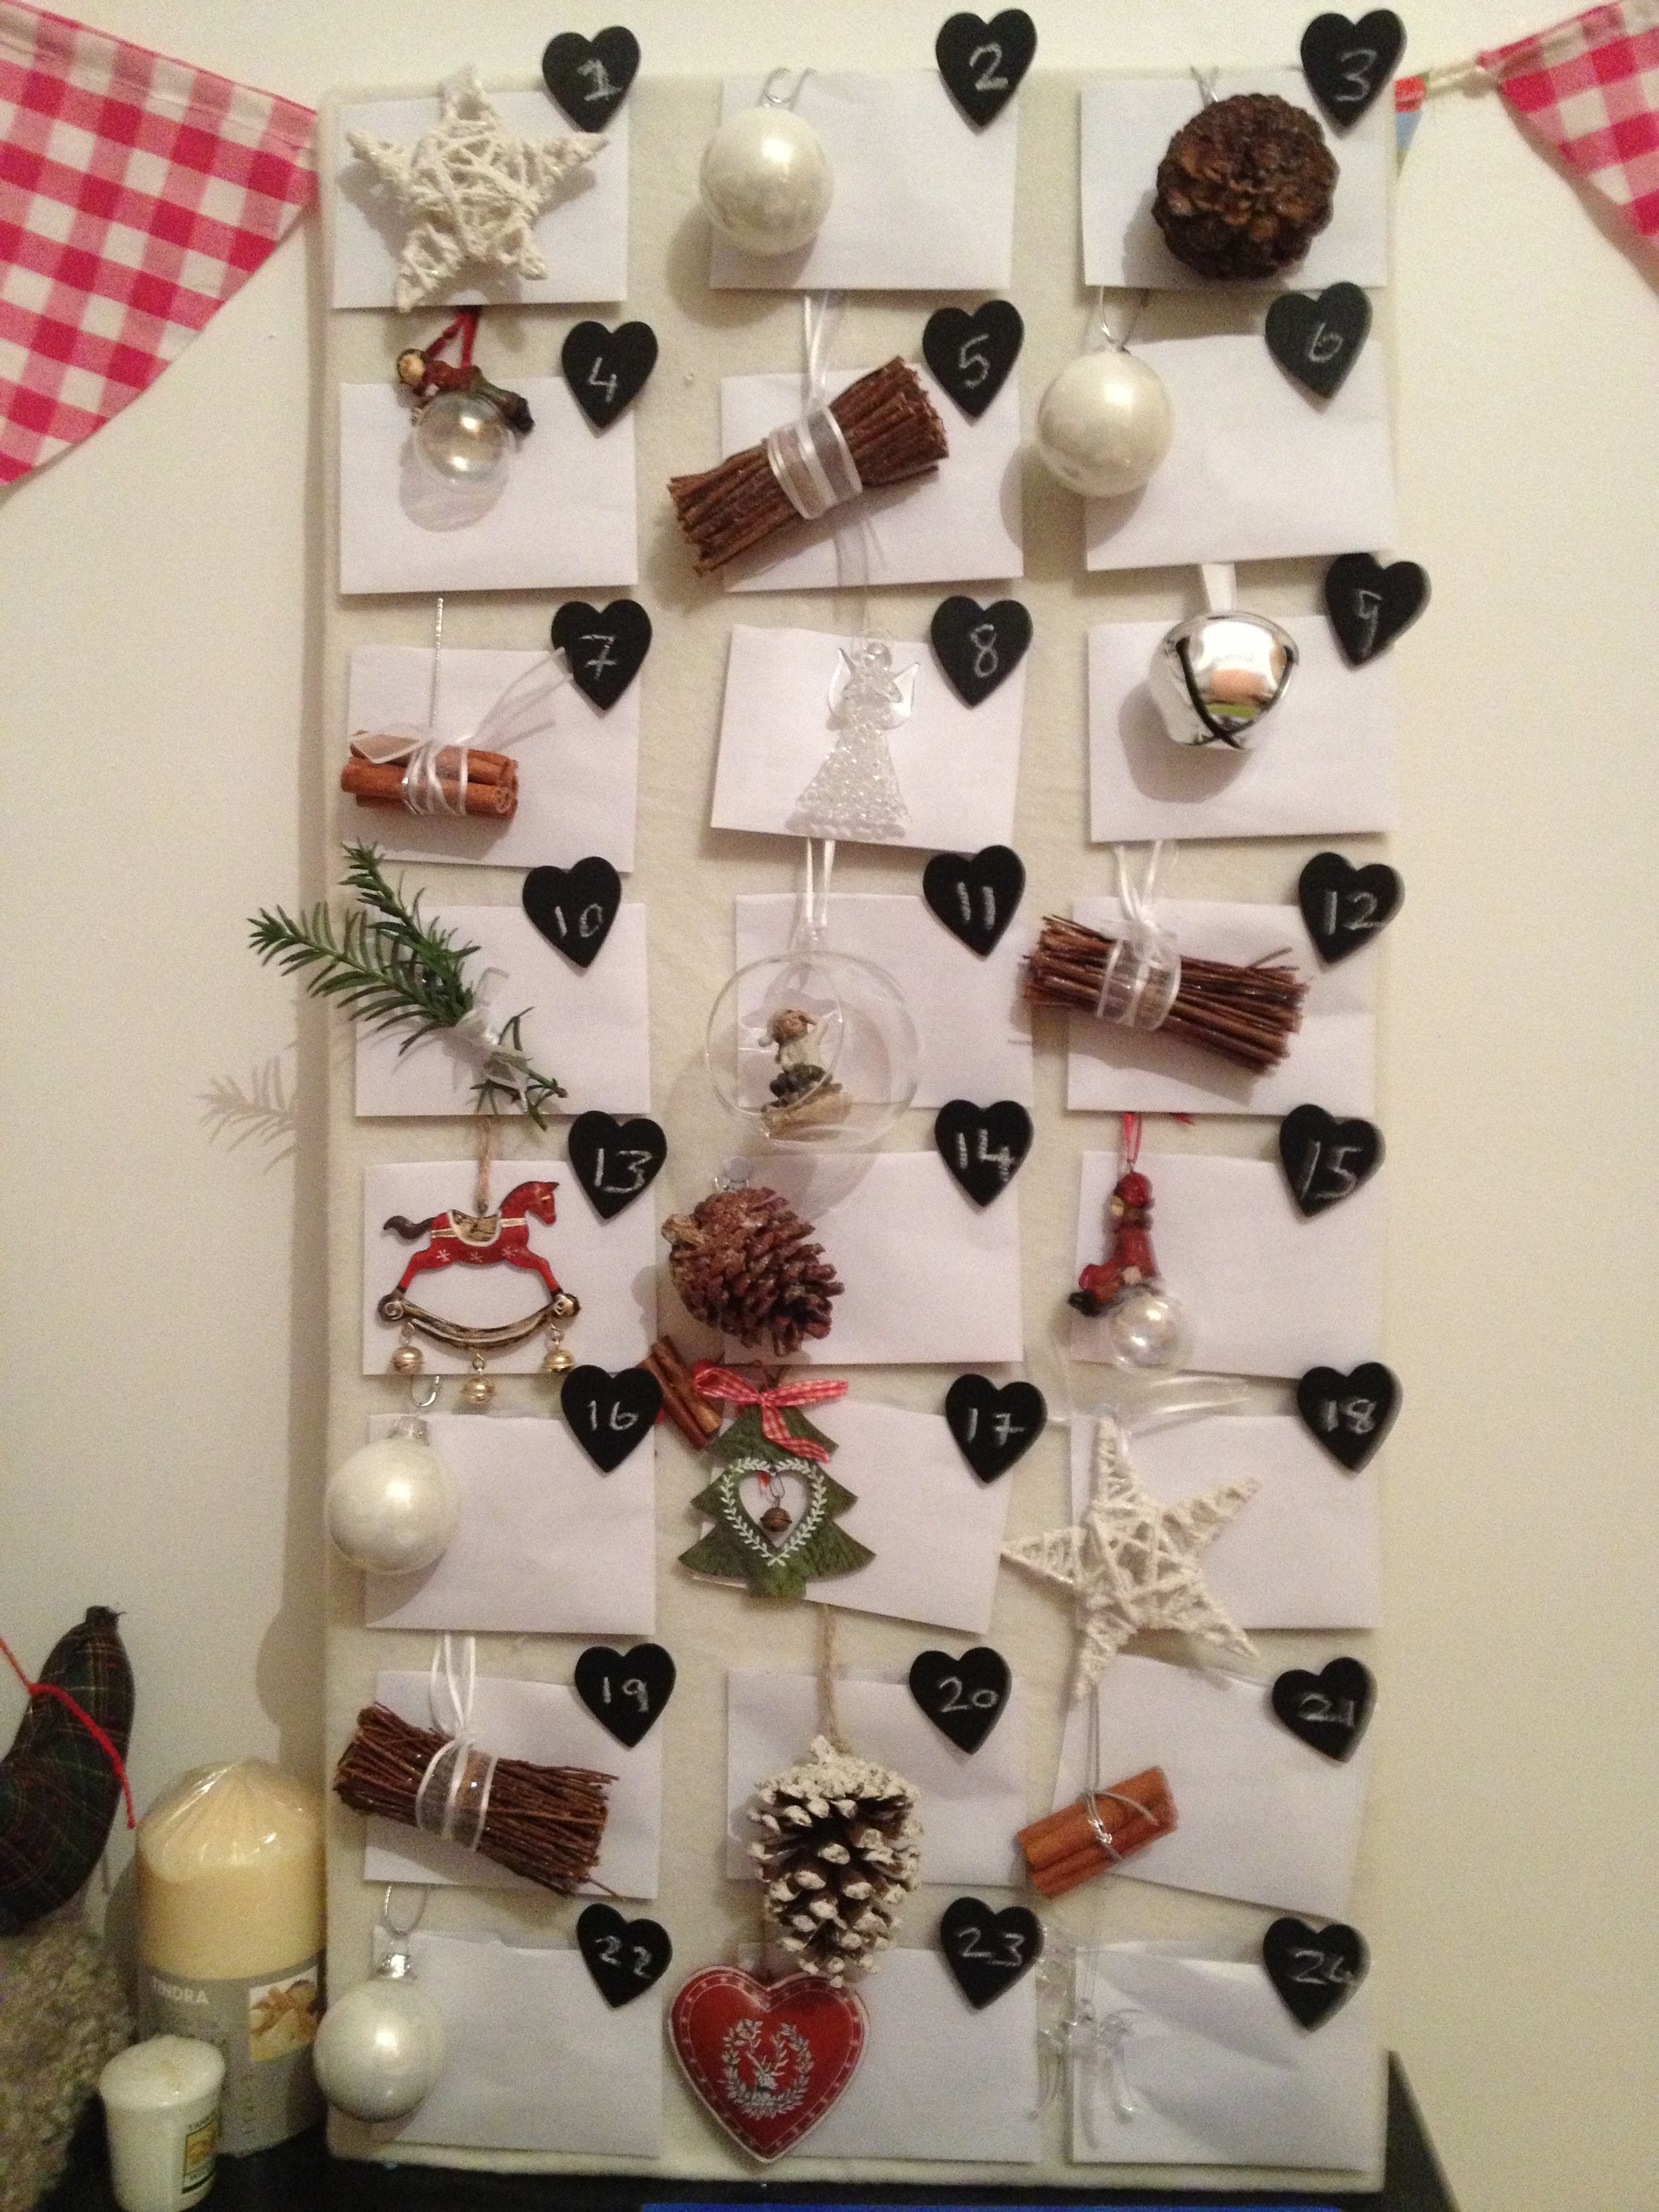 Homemade advent calendar!!   Made from material, Christmas baubles and homemade baubles attached to envelopes which inside have fun voucher activities or Christmas facts/jokes! My girlfriend loves it!